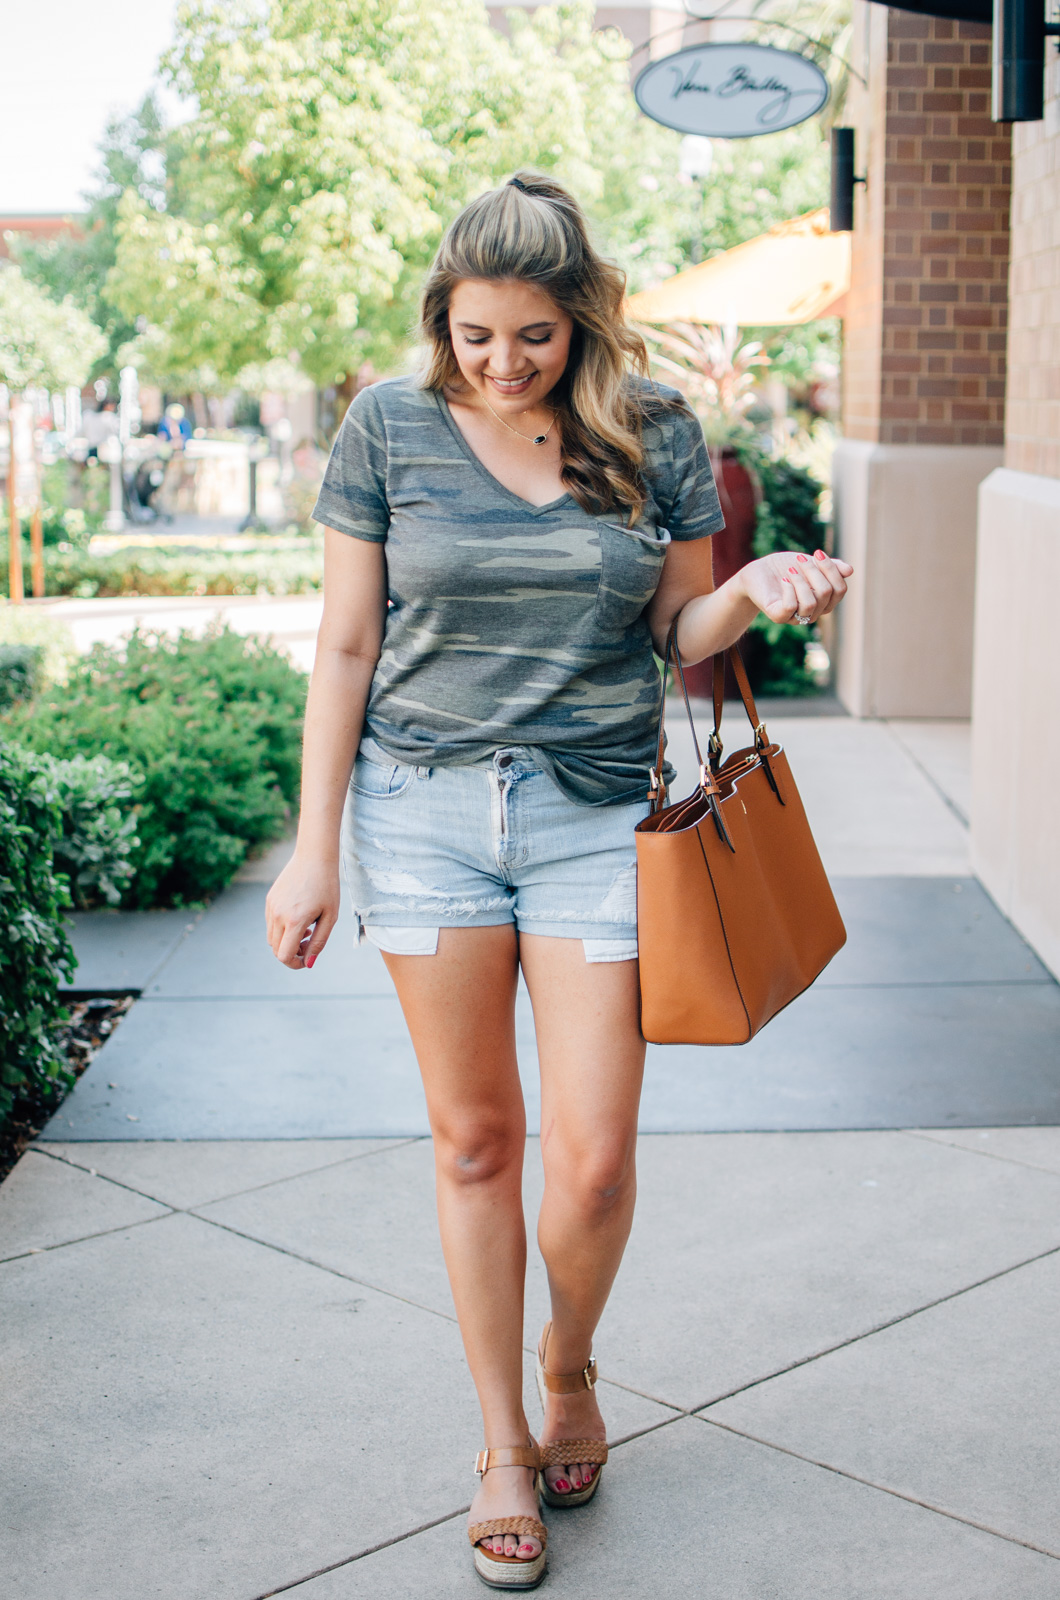 camo tee and cutoffs - cute summer outfit idea | For more summer style ideas, head to bylaurenm.com!